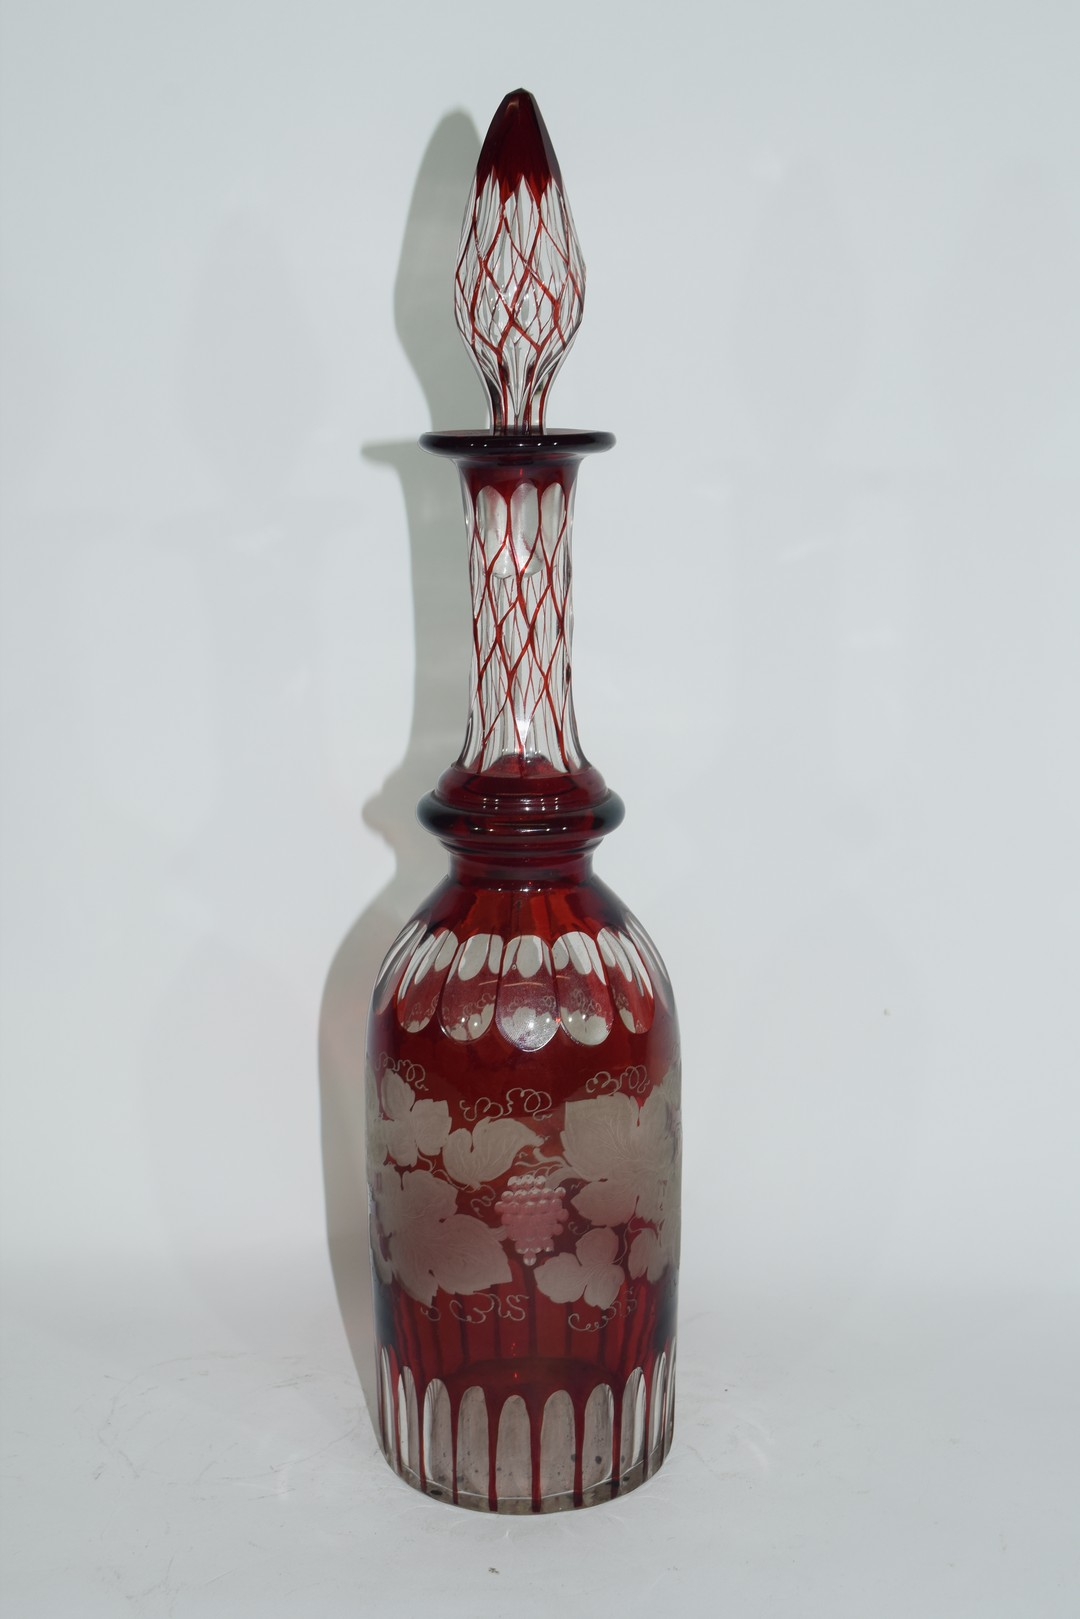 Bohemian style glass decanter and tear drop stopper - Image 3 of 3